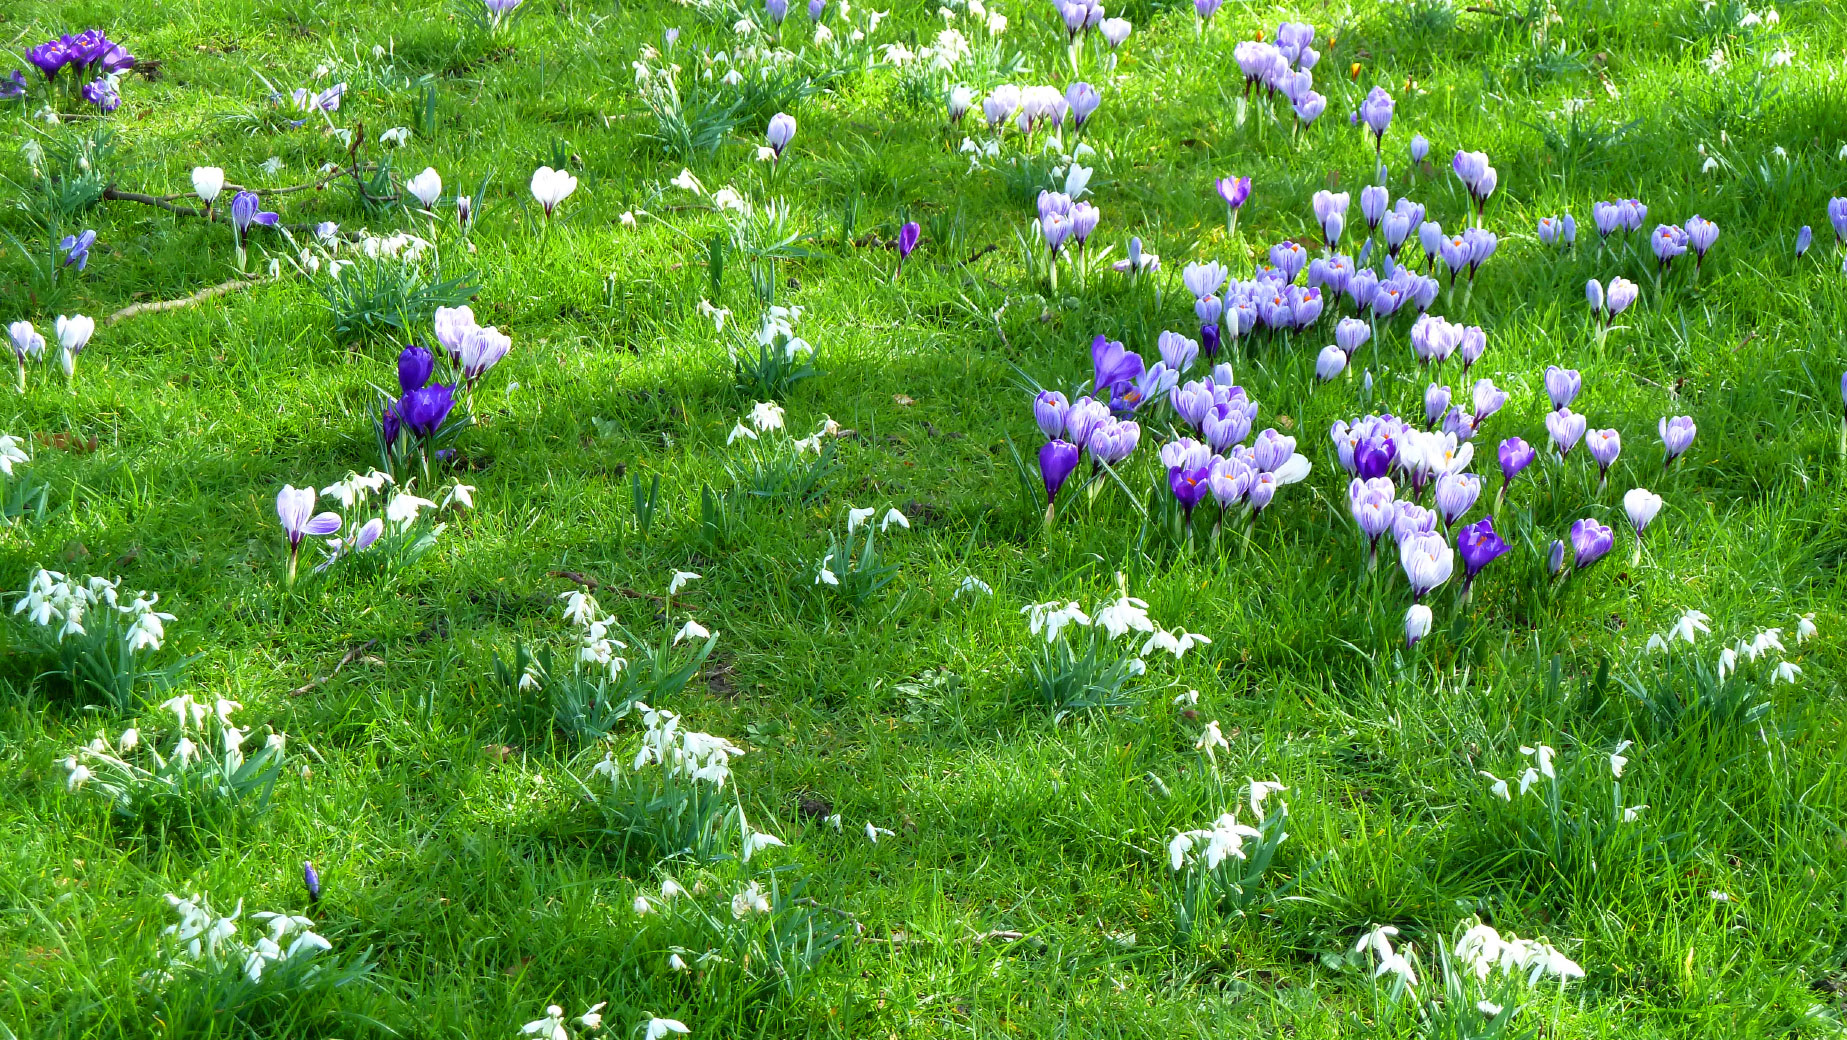 Mowing Maintenance Of Bulbs Tips For Mowing Bulbs In Lawn Areas